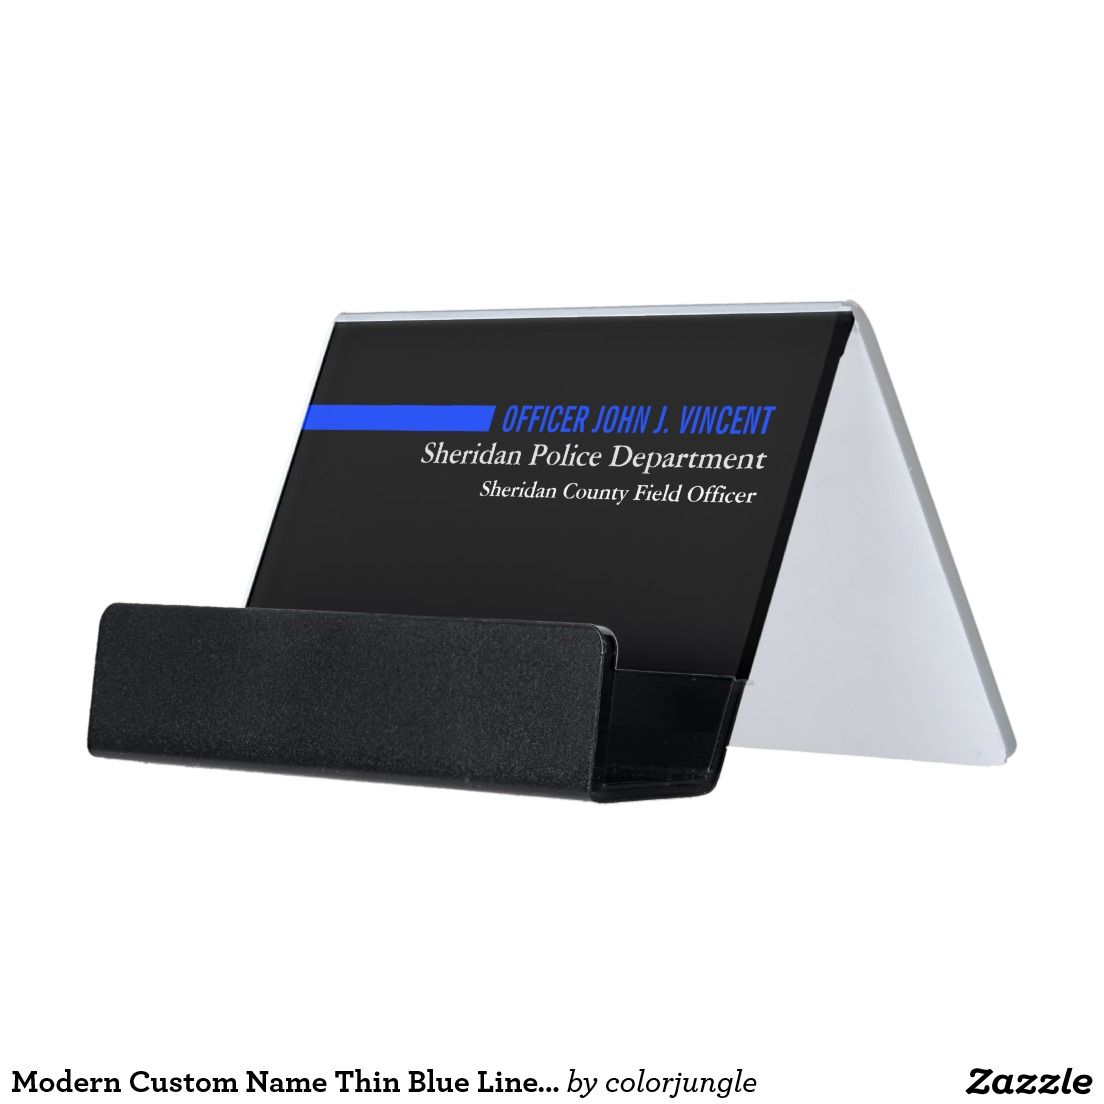 modern custom name thin blue line police desk business card holder - Police Business Cards